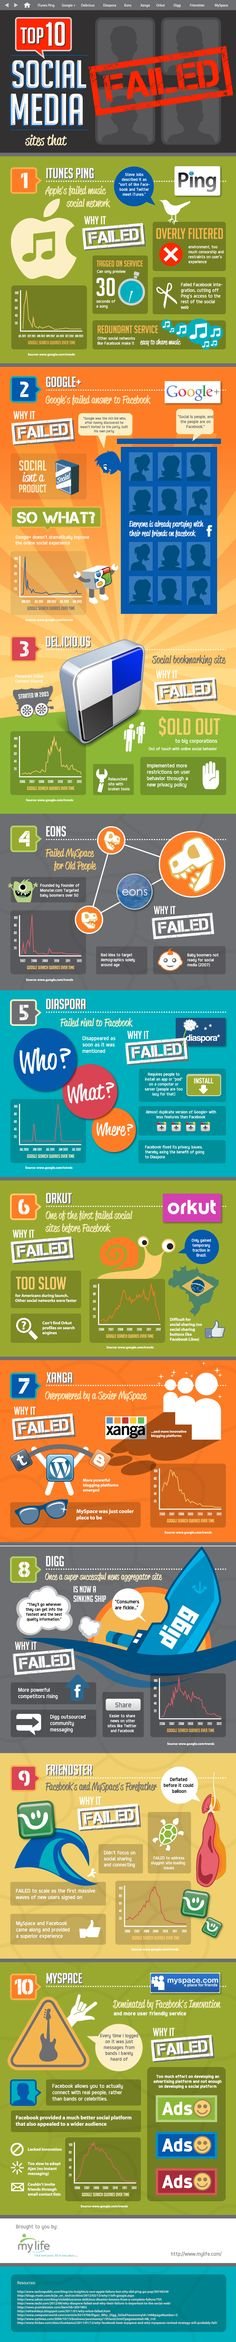 True? - Top 10 Social Media sites that failed #infographic